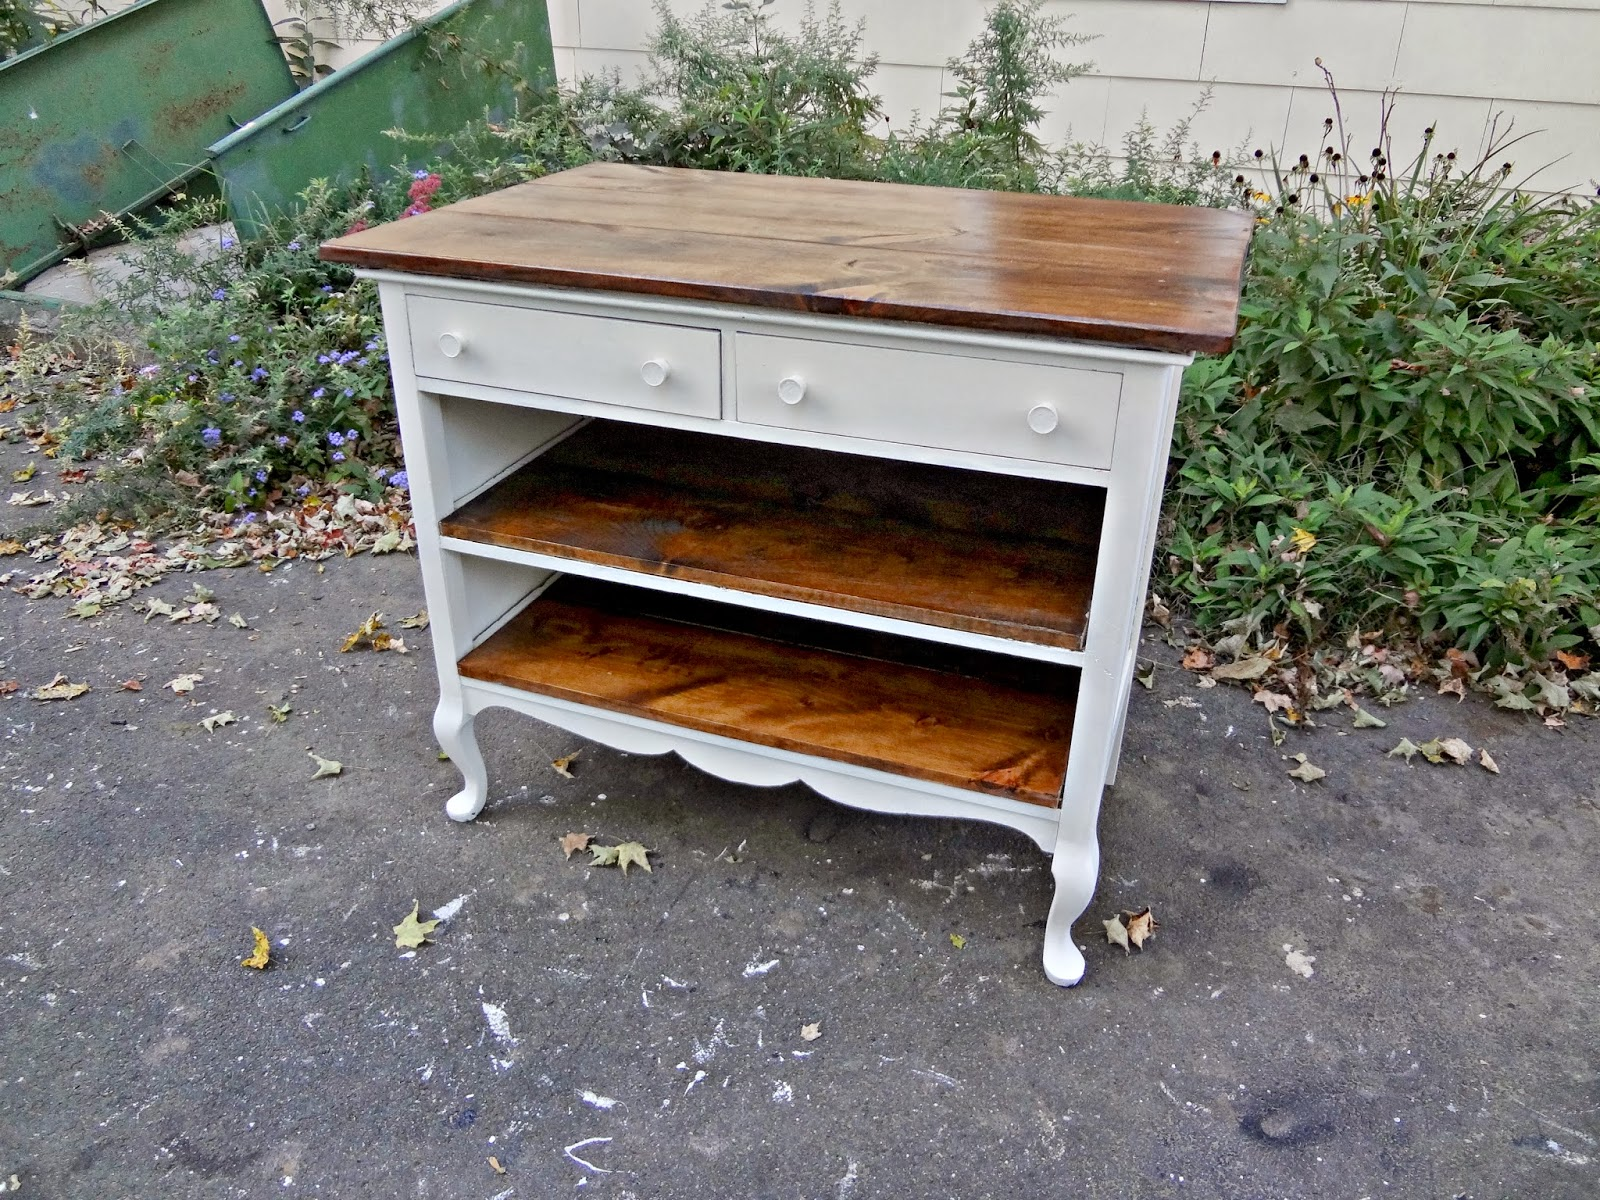 Heir and Space: Antique Dresser Turned Kitchen Island How To Make A Kitchen Island Out Of Dresser on